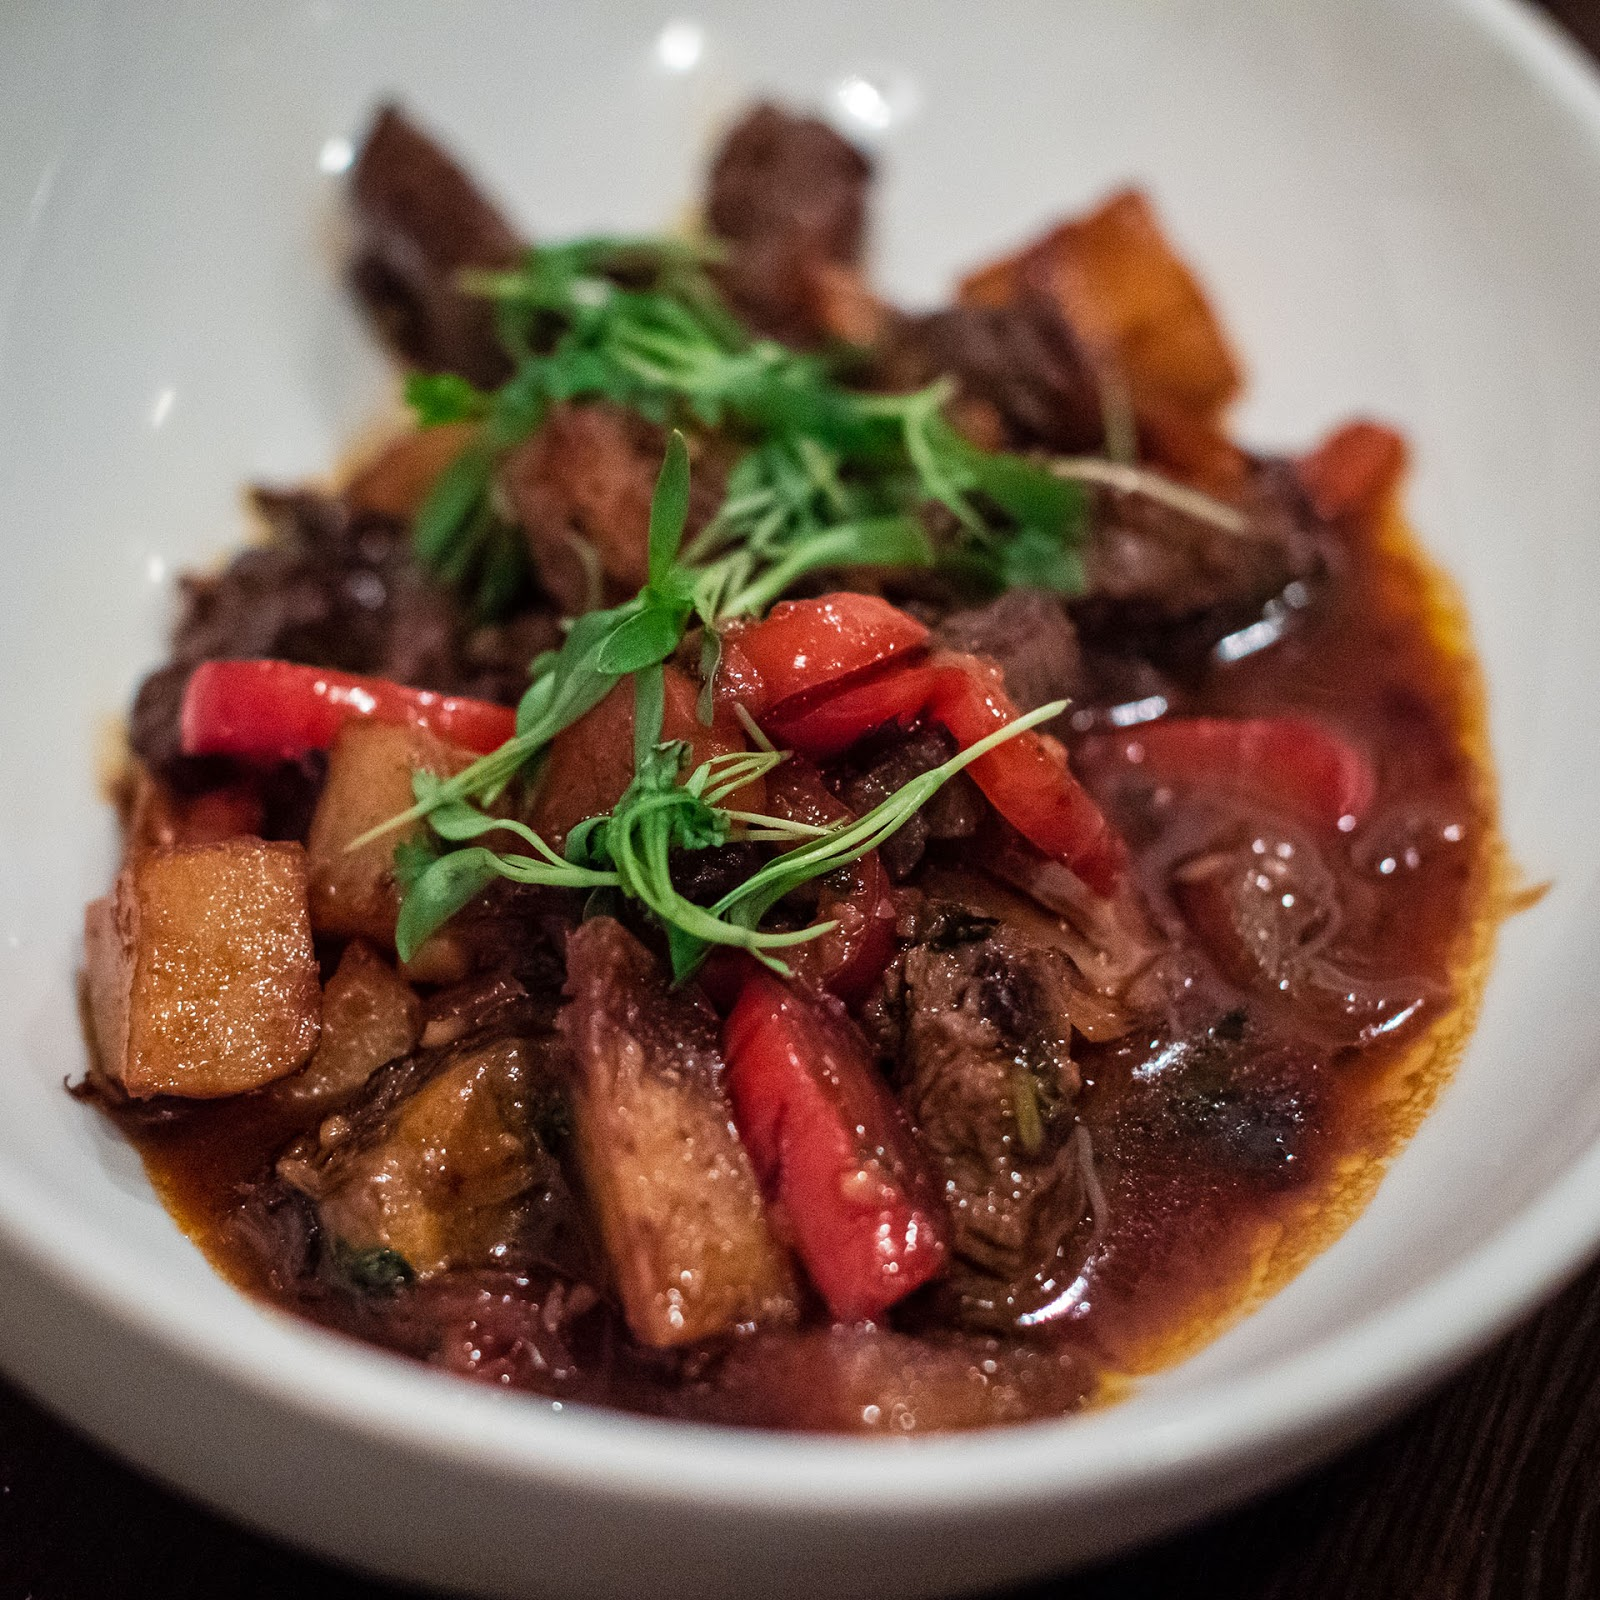 Lomo saltado at Mezon | Local Food Rocks